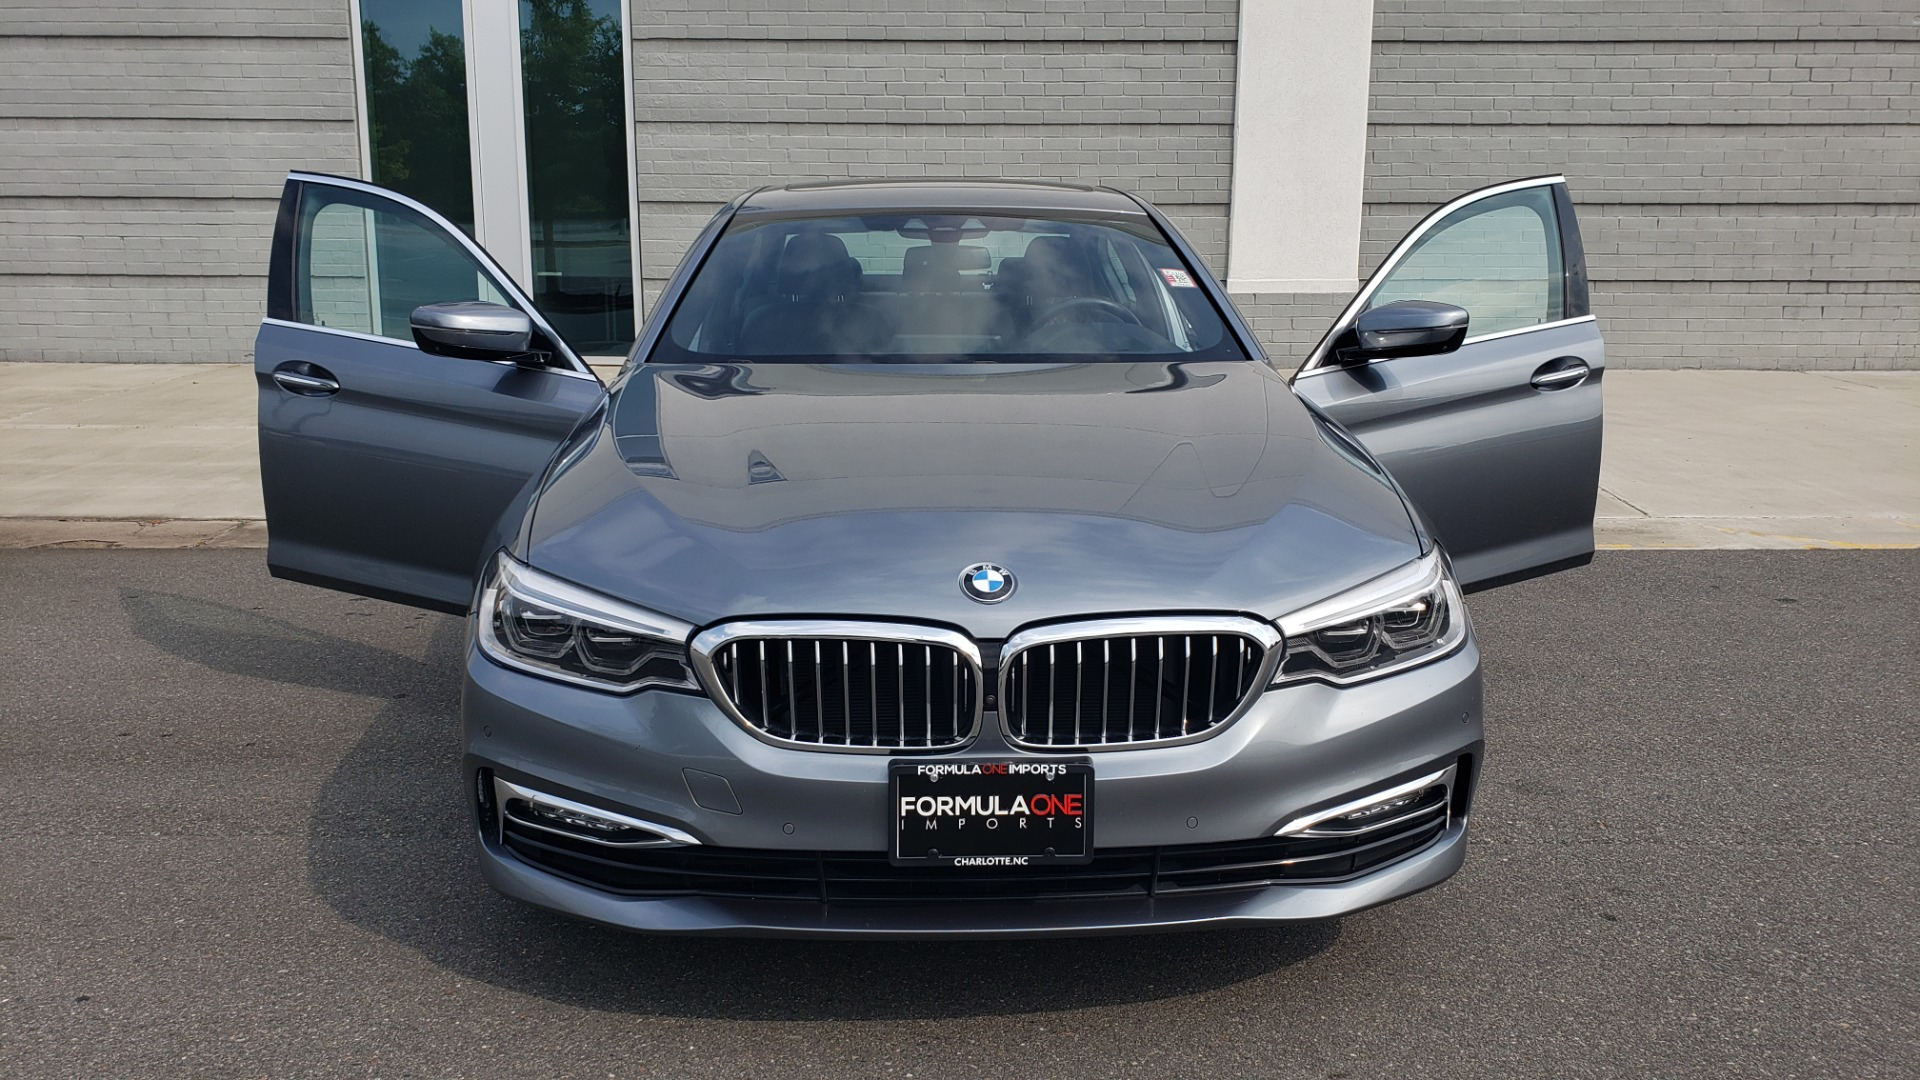 Used 2018 BMW 5 SERIES 540I XDRIVE PREMIUM / EXECUTIVE / LUXURY / H/K SND / REMOTE CONTROL PARKING for sale $40,995 at Formula Imports in Charlotte NC 28227 20